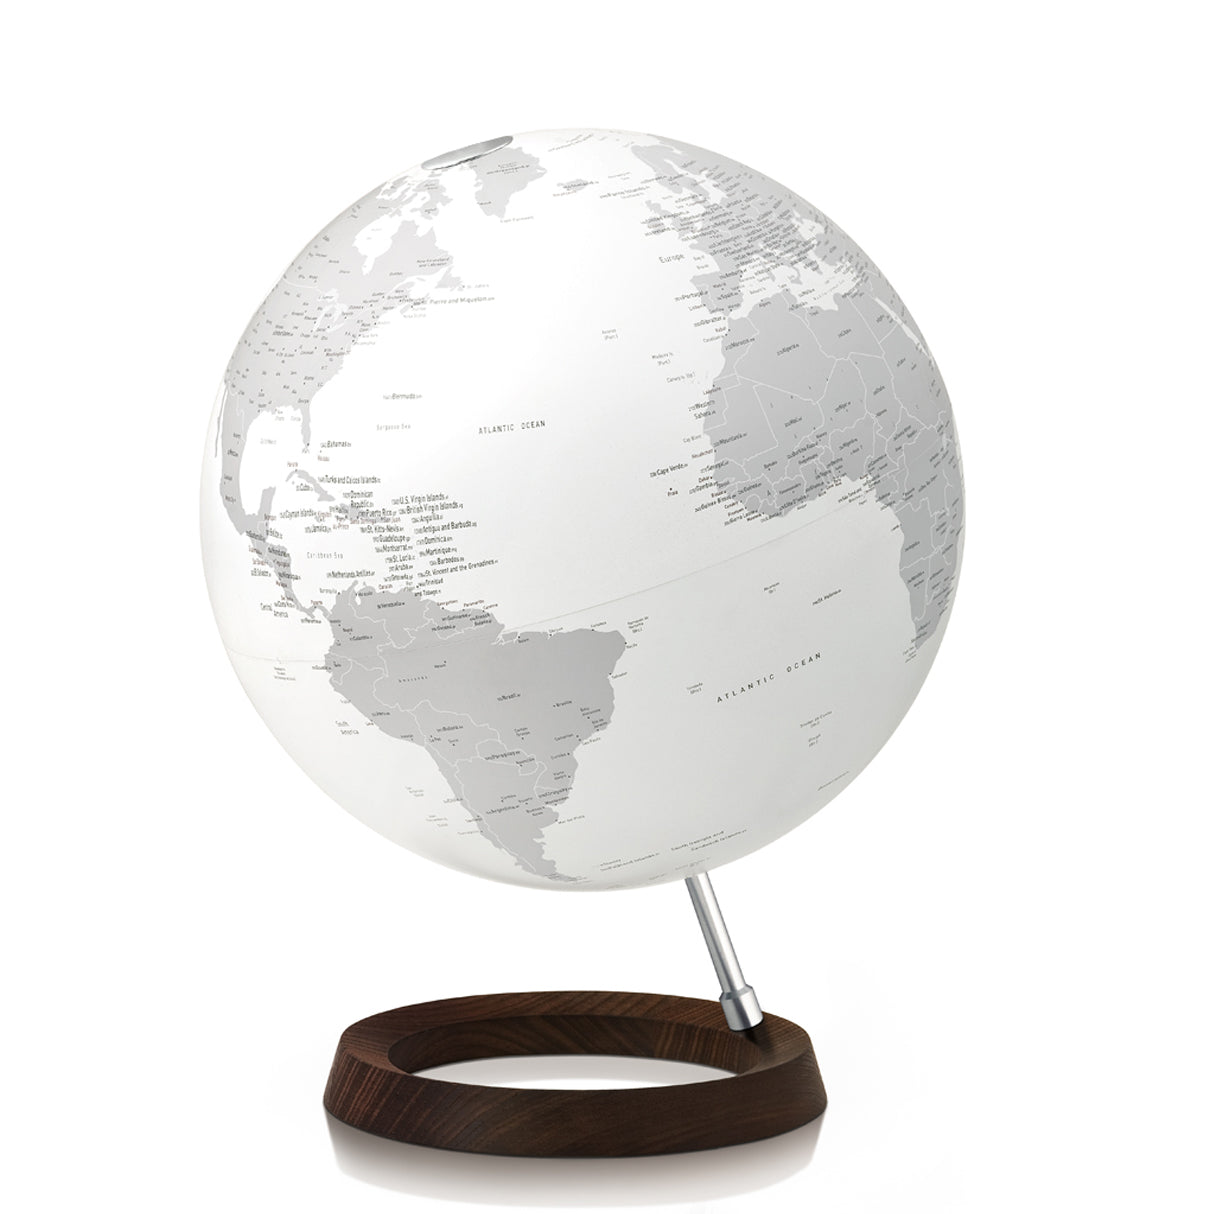 mappamondo - FULL CIRCLE Reflection - yourglobestore